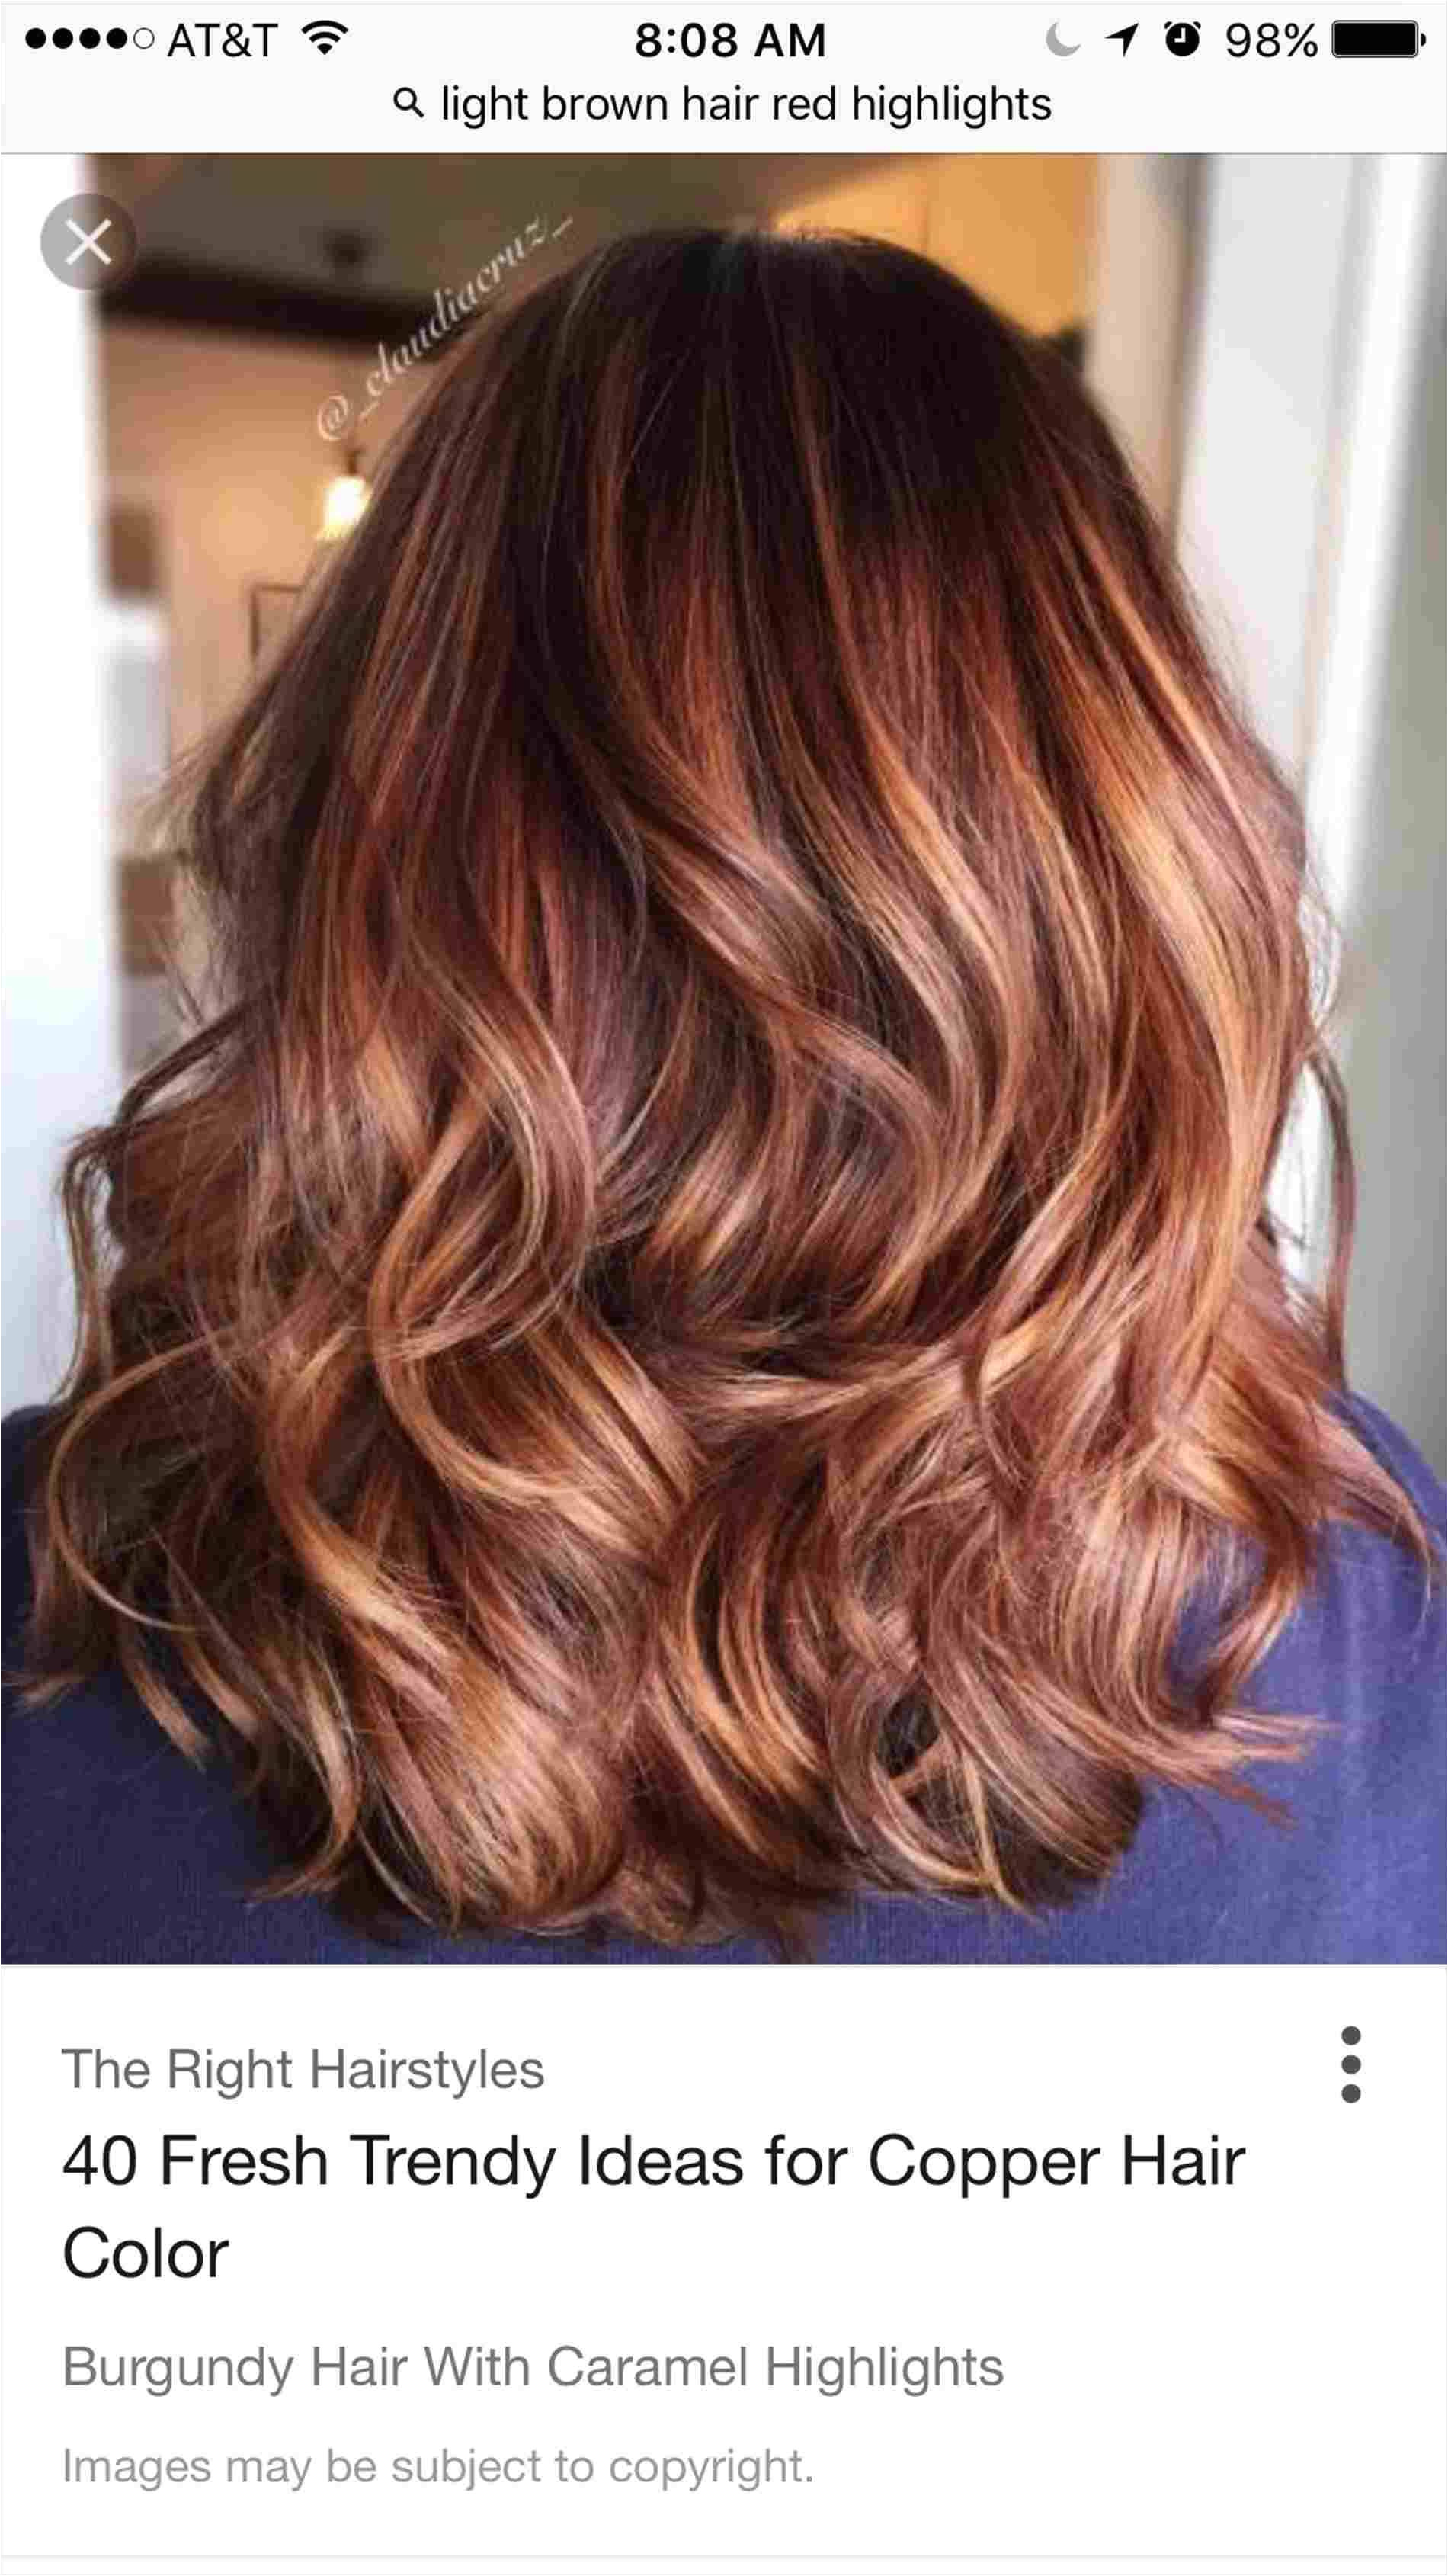 Hairstyle and Color Ideas Inspired Hair Colors with Highlights and Lowlightsi Pinimg 1200x 0d 60 8a